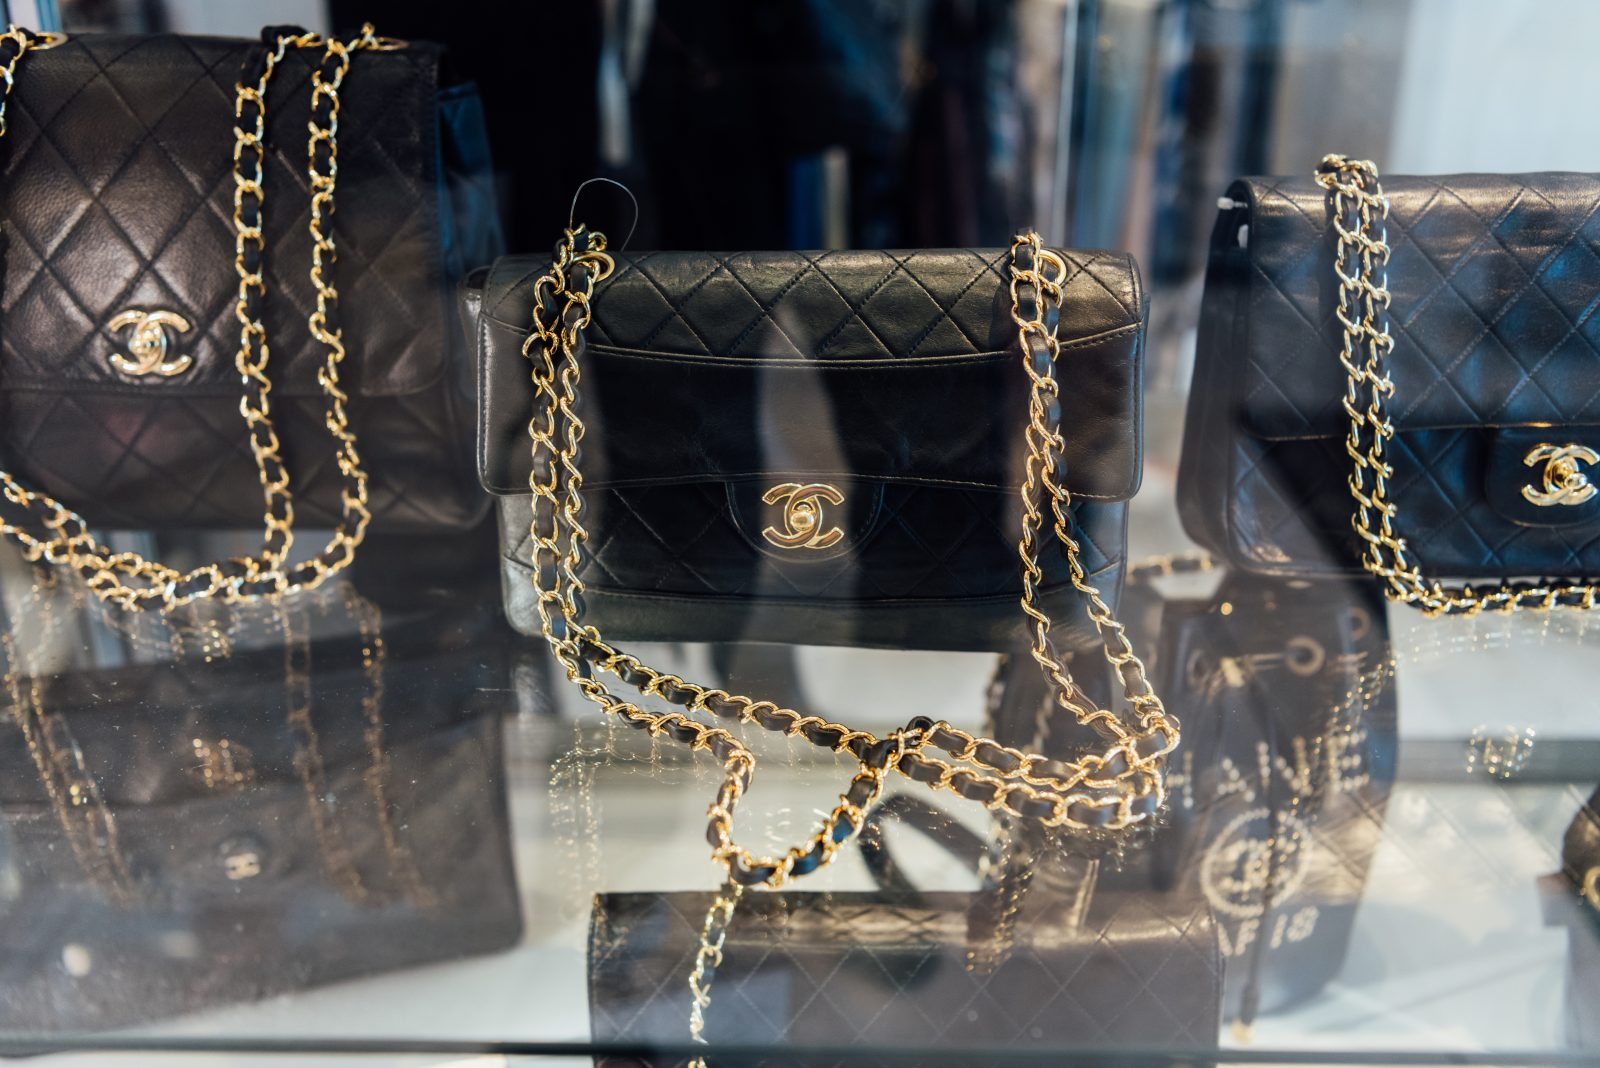 The collection of Chanel bags at Gus Mayer